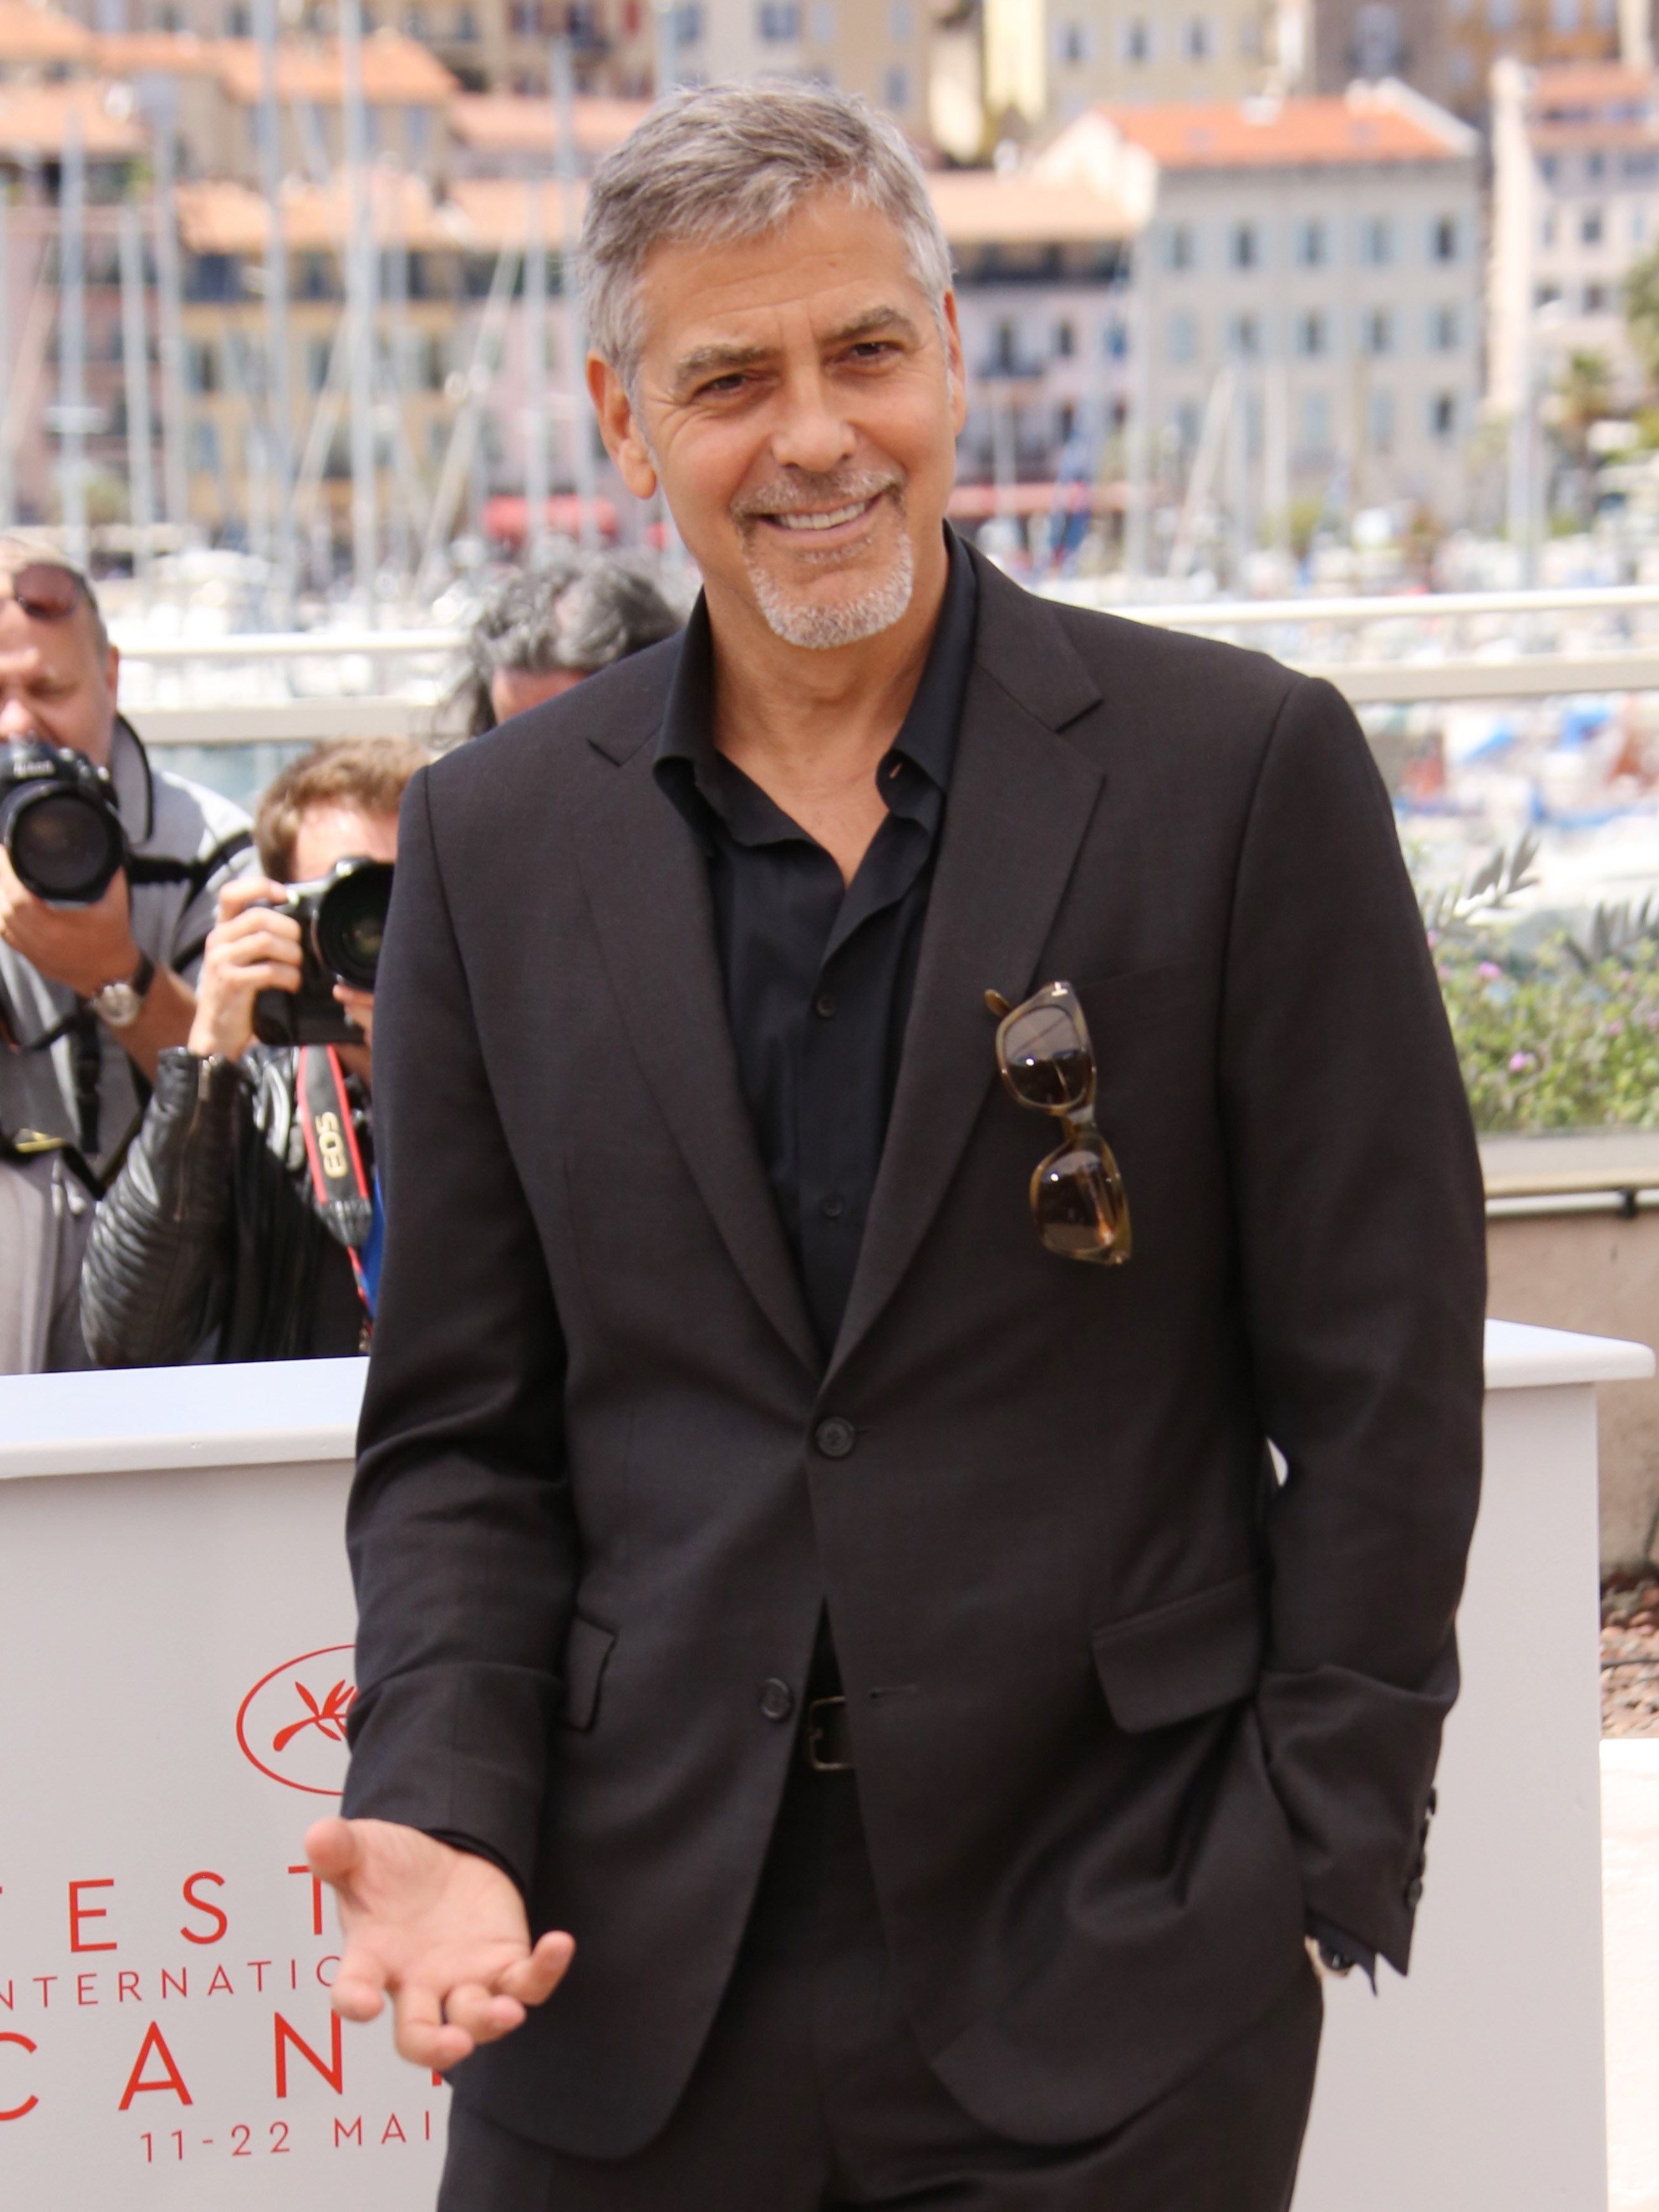 George Clooney weighs in on Meryl Streep's anti Trump comments